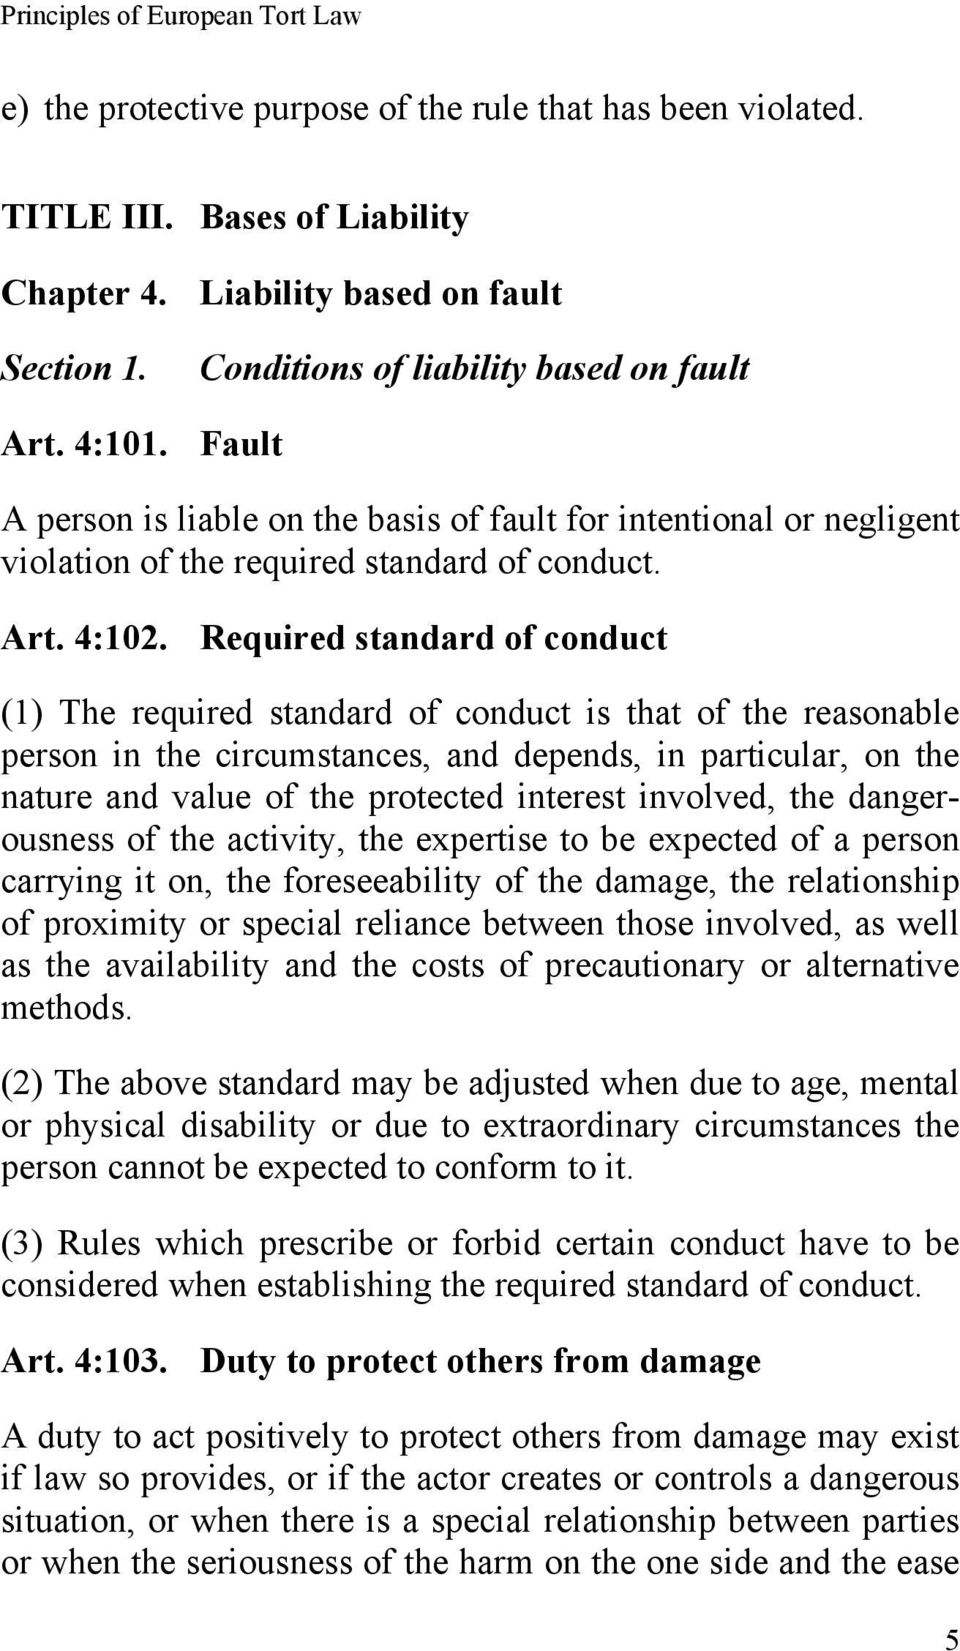 Required standard of conduct (1) The required standard of conduct is that of the reasonable person in the circumstances, and depends, in particular, on the nature and value of the protected interest